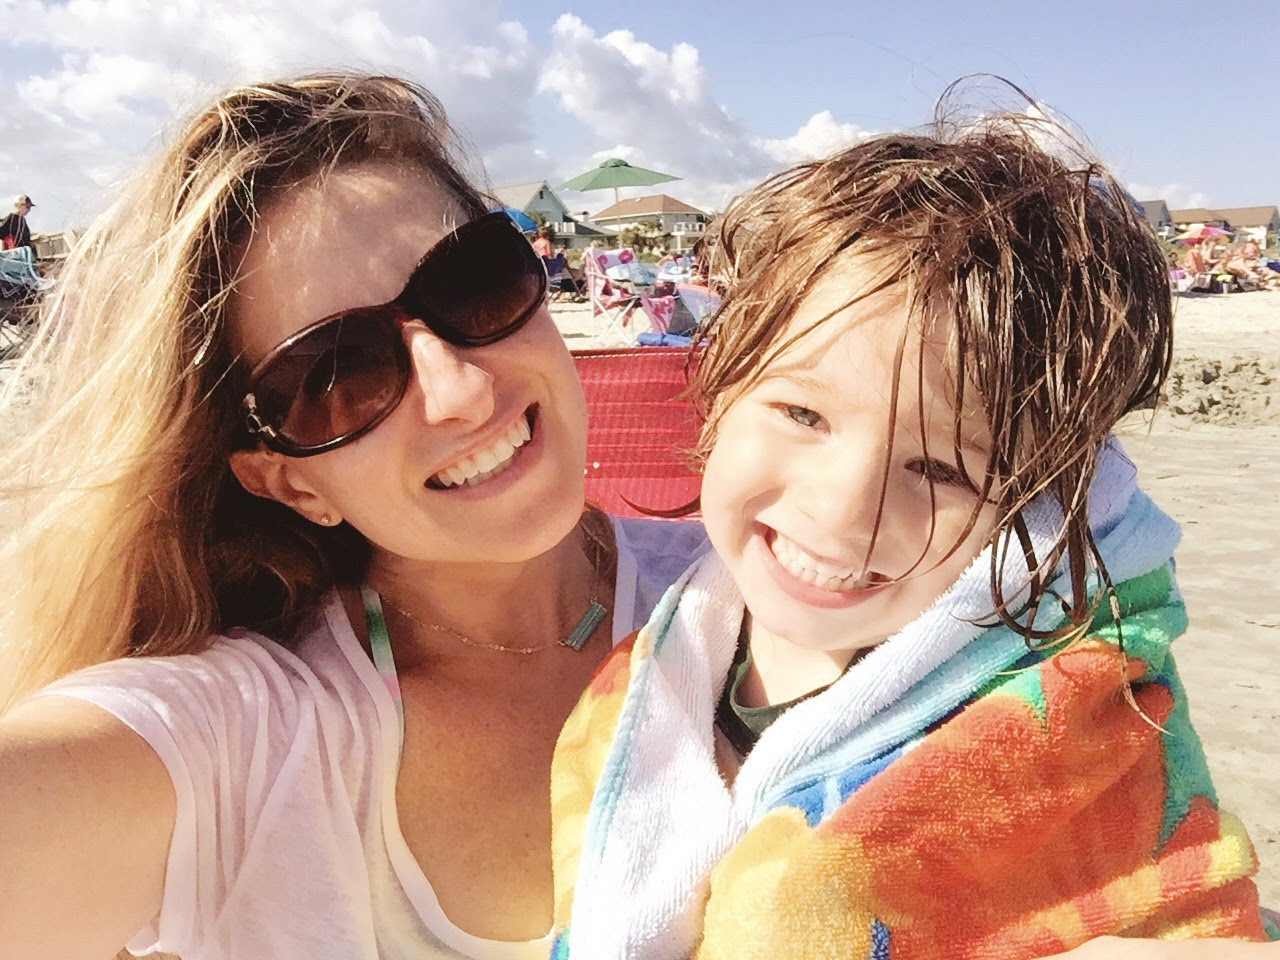 Post-run, Post-bike ride time on the beach with My little Beach Baby